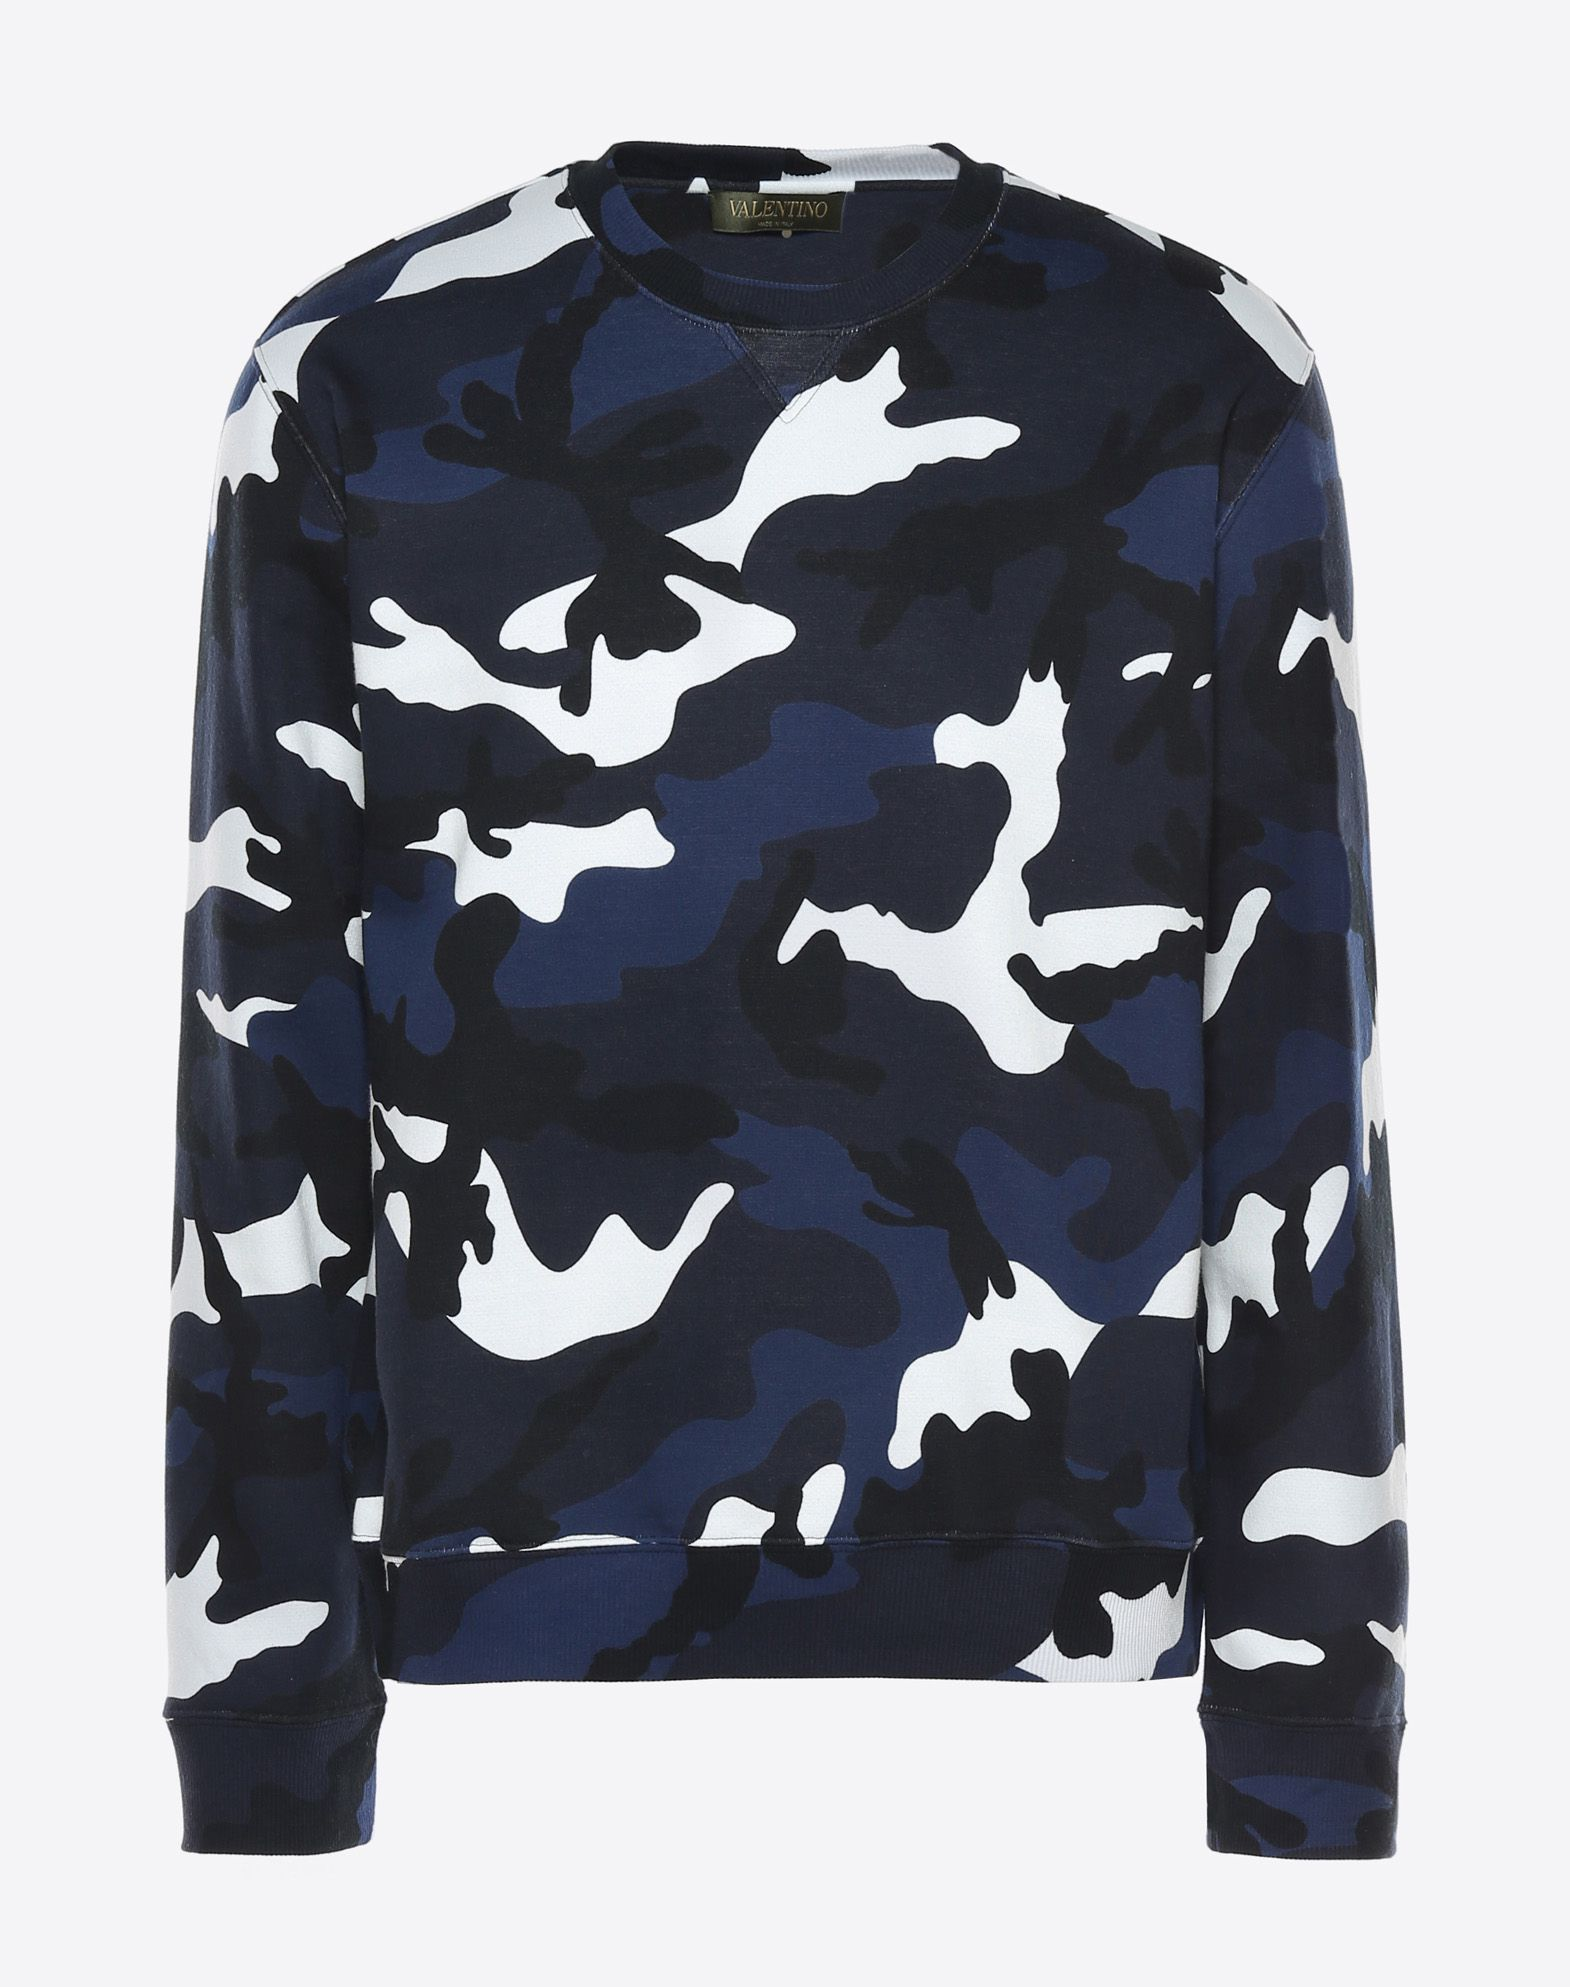 VALENTINO Camouflage design Round collar Long sleeves  12027440vh